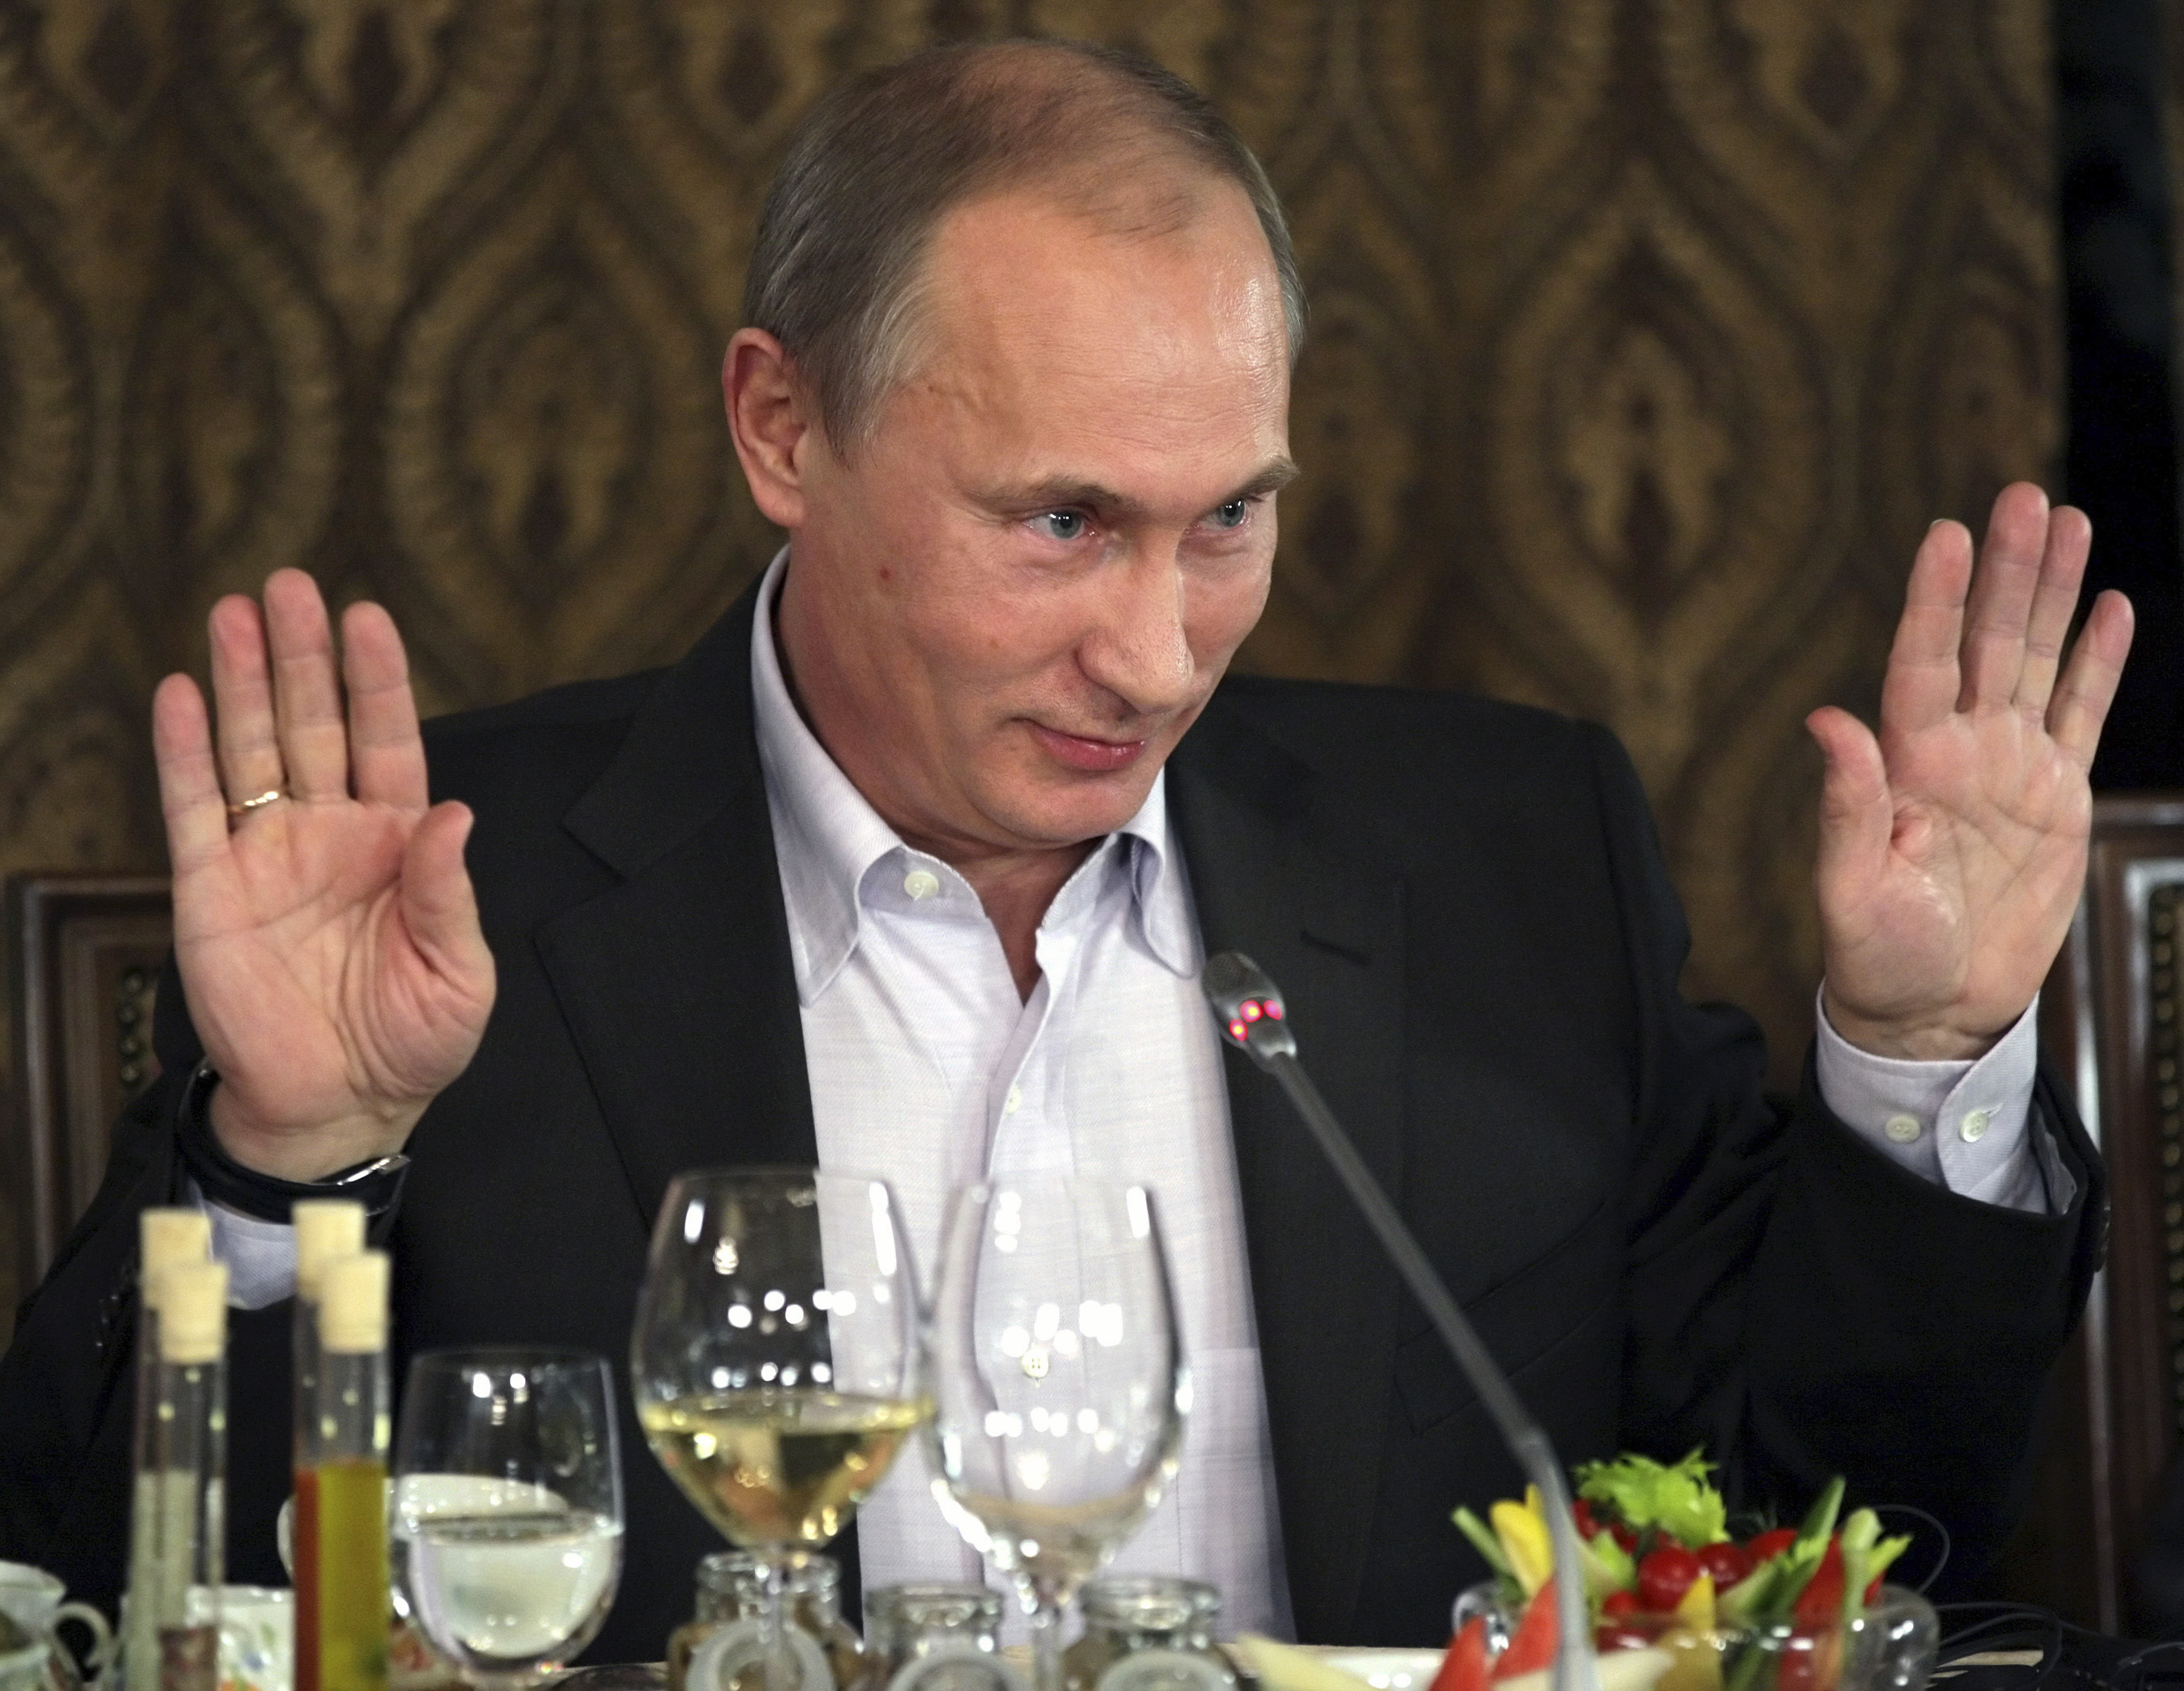 Any comments on Mr. Putin's hand? RTR2TWDT